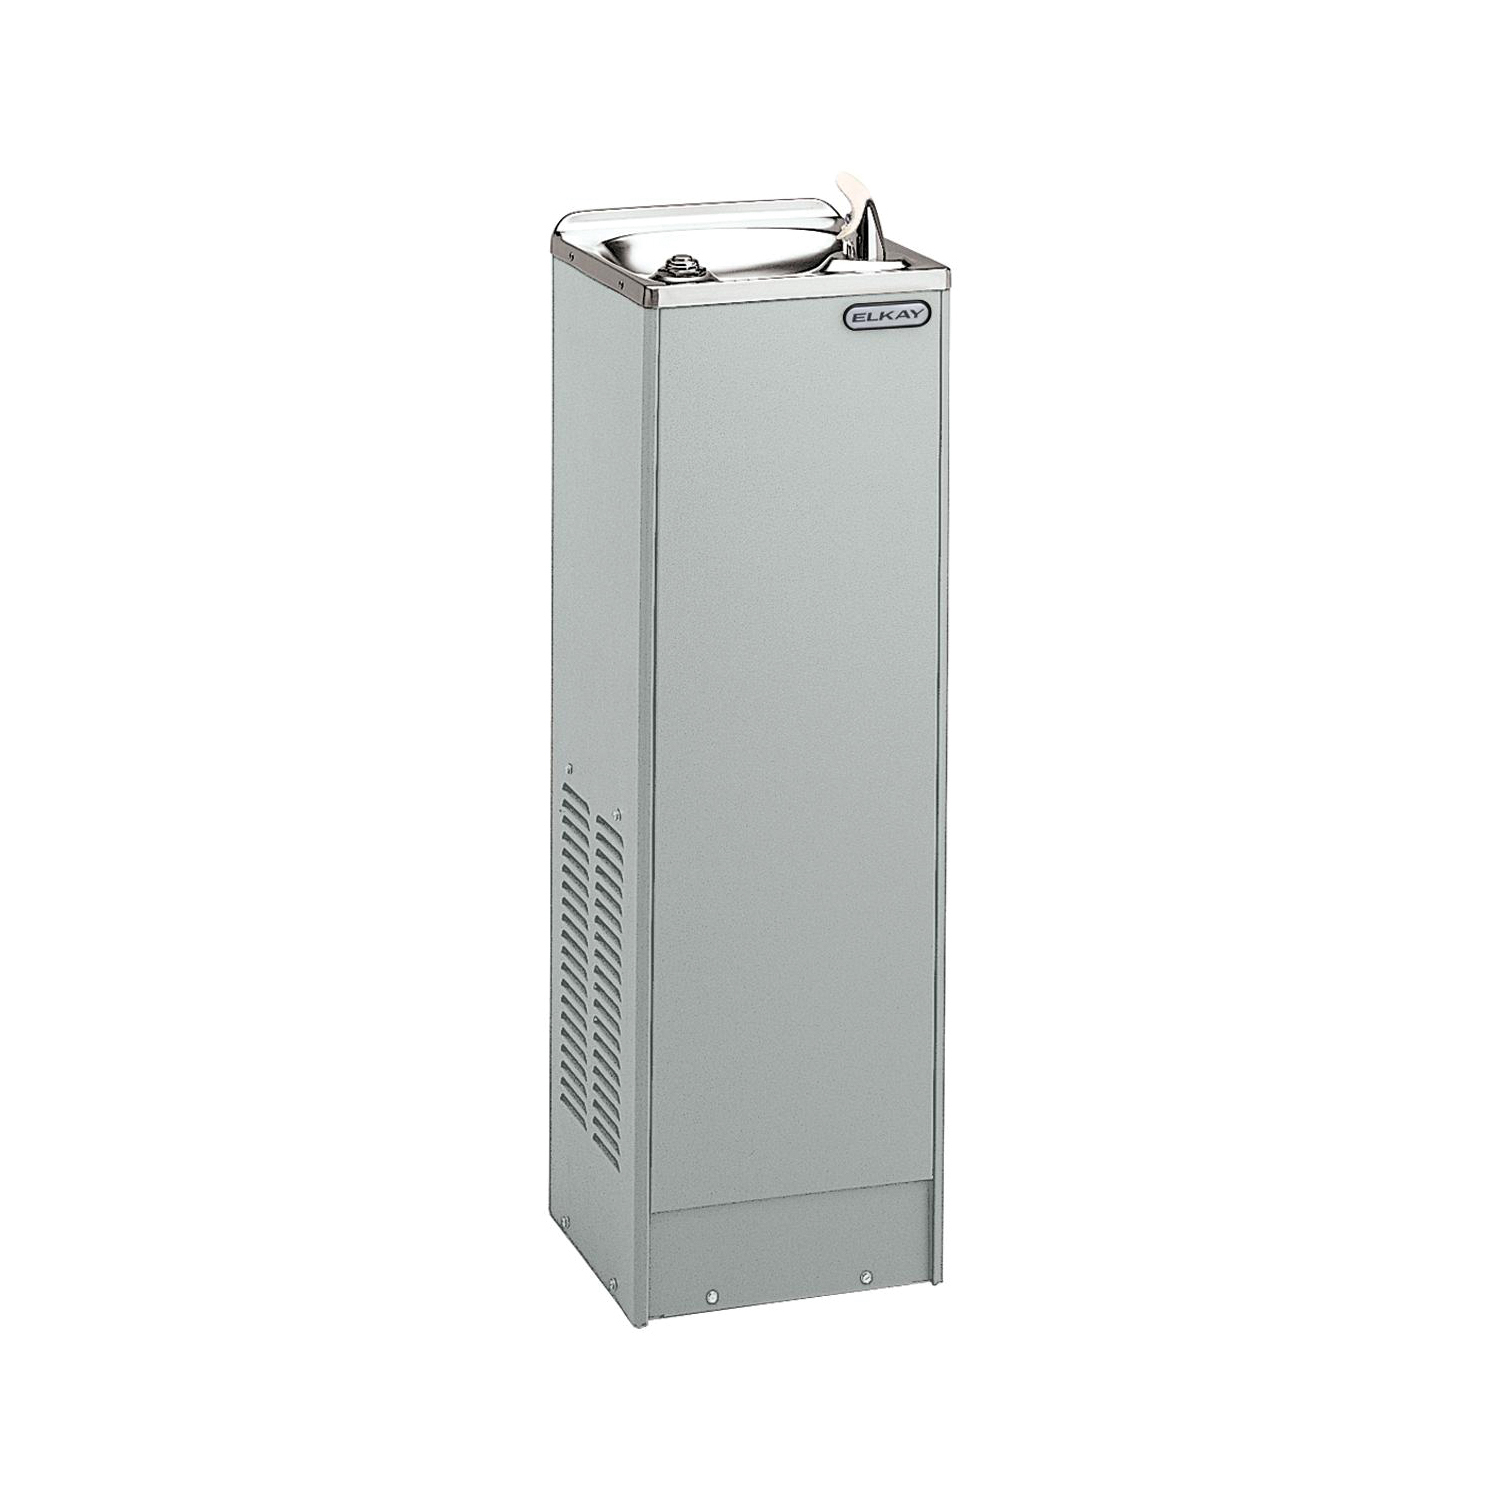 Elkay® LFDE10L1Z Space-Ette® Collection Filtered Cooler, Refrigerated Chilling, Domestic